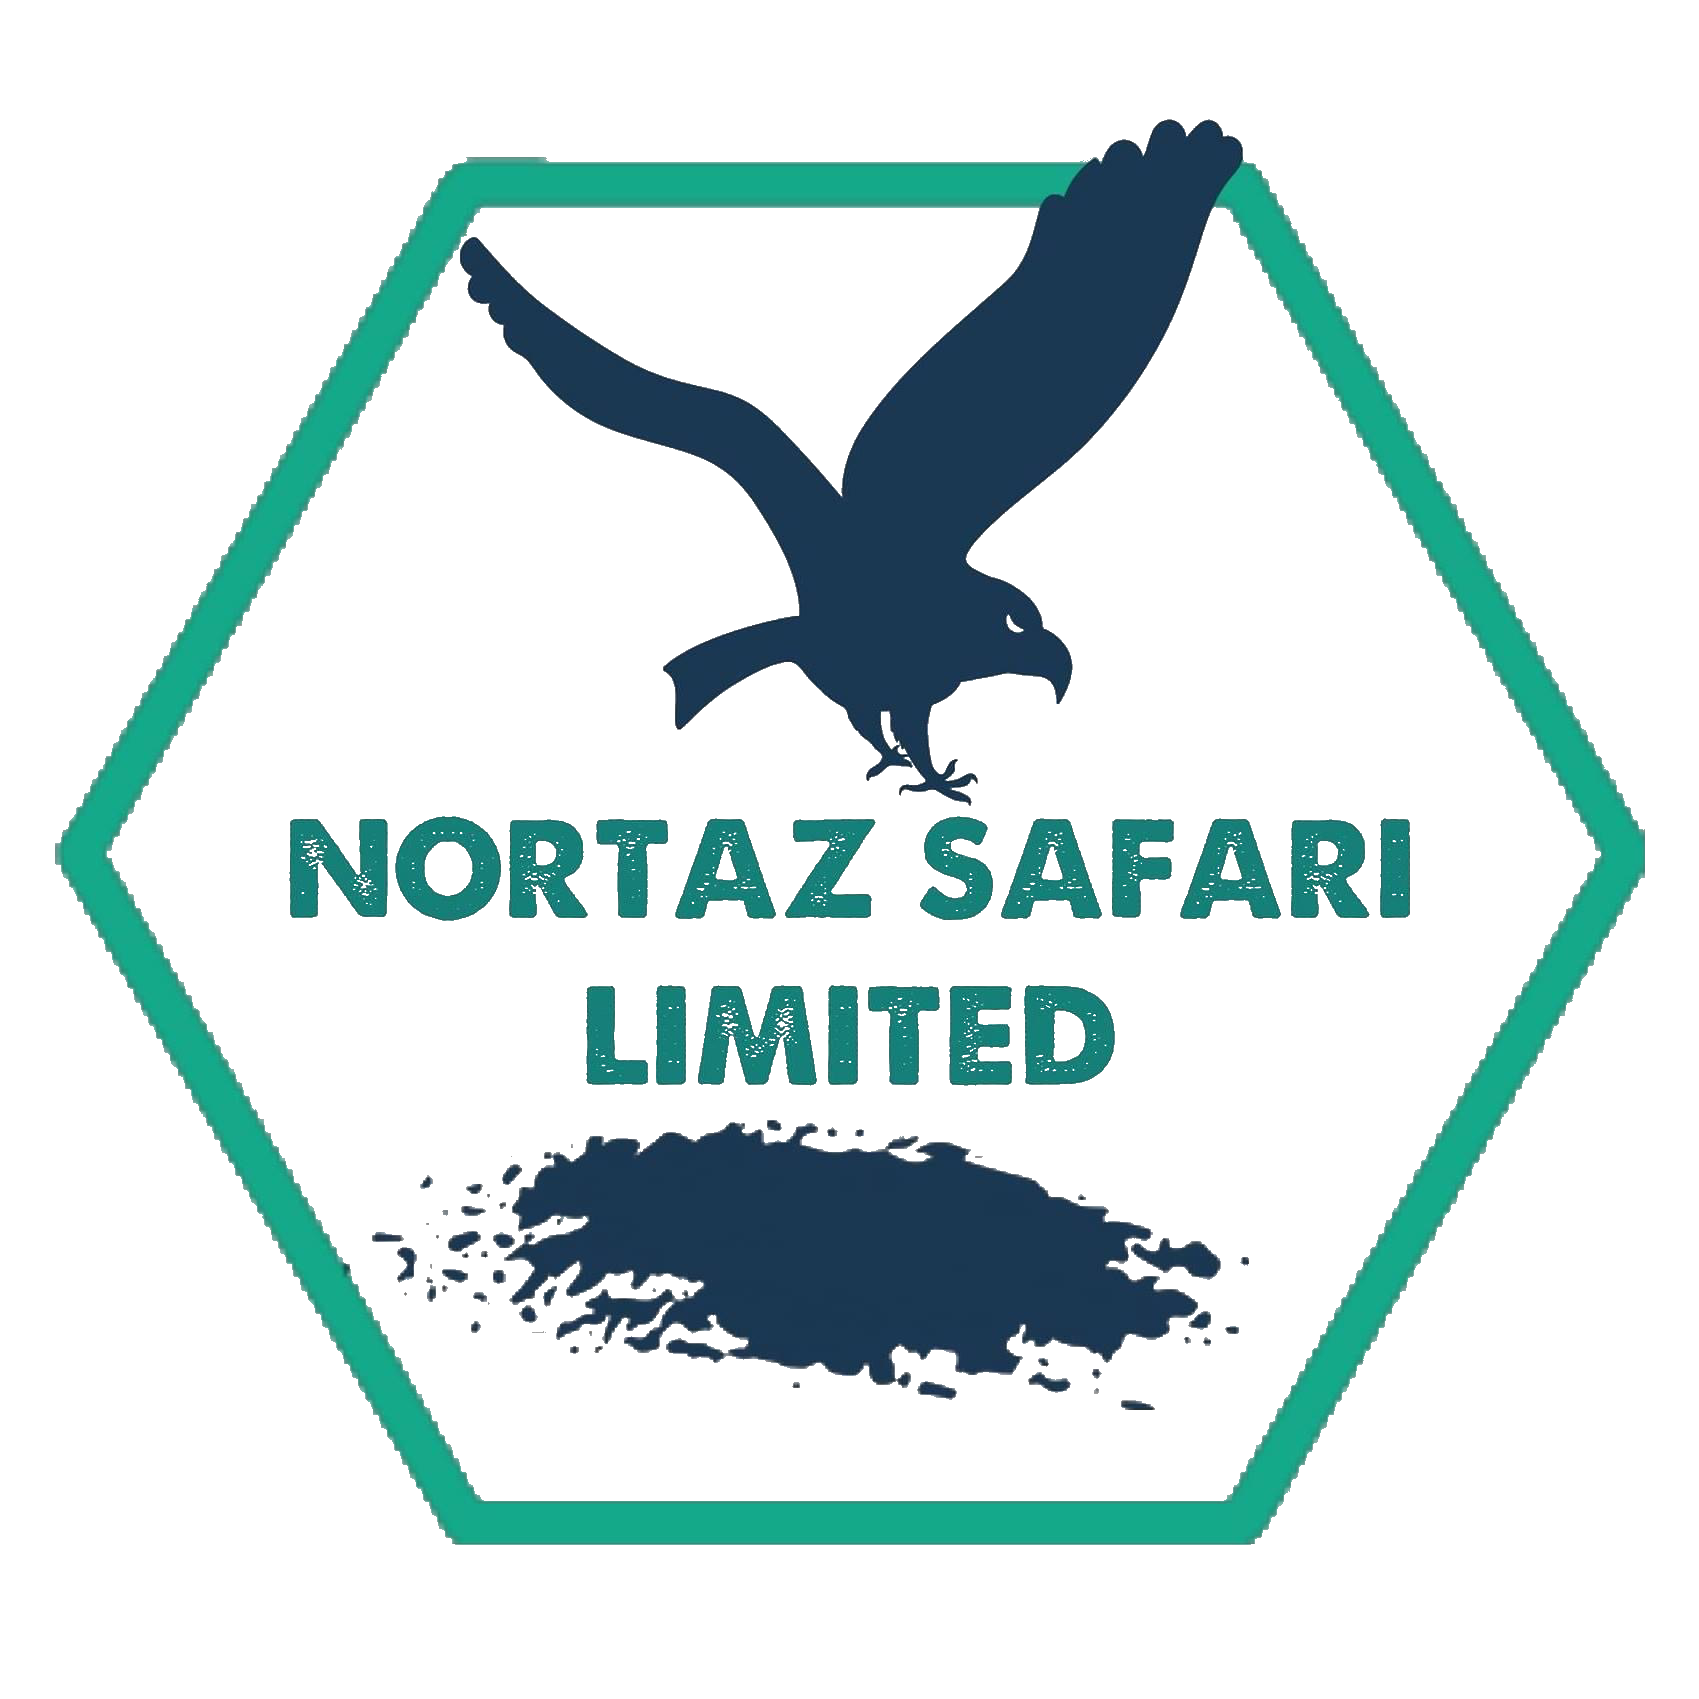 Nortaz Safari